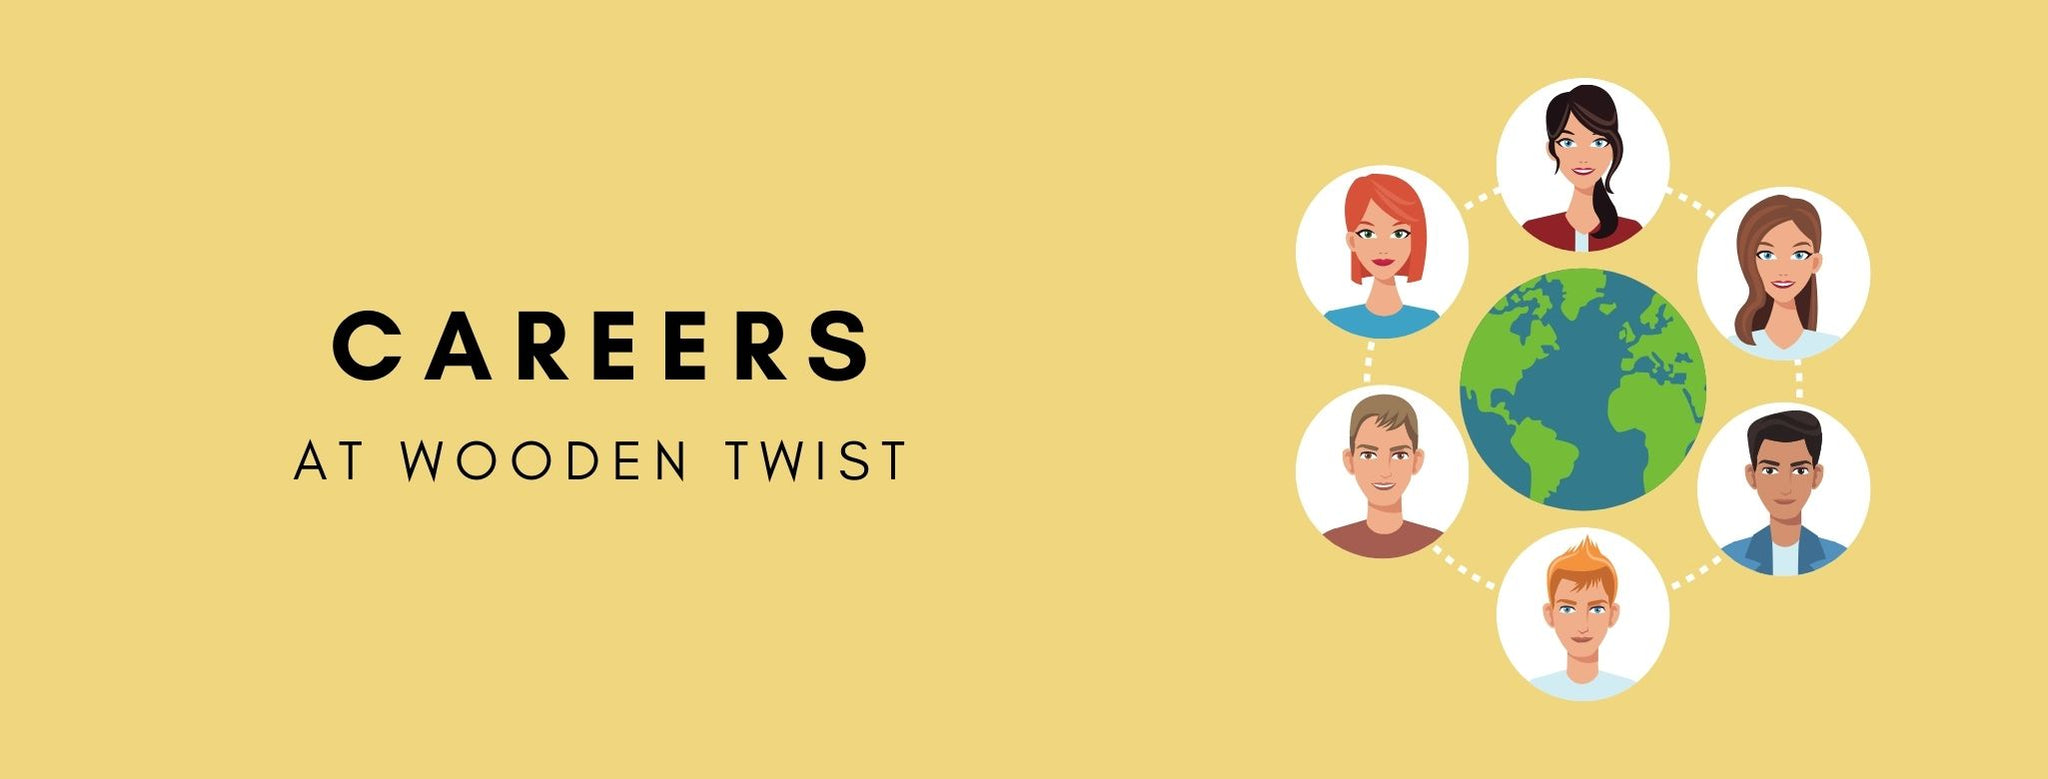 careers at wooden twist